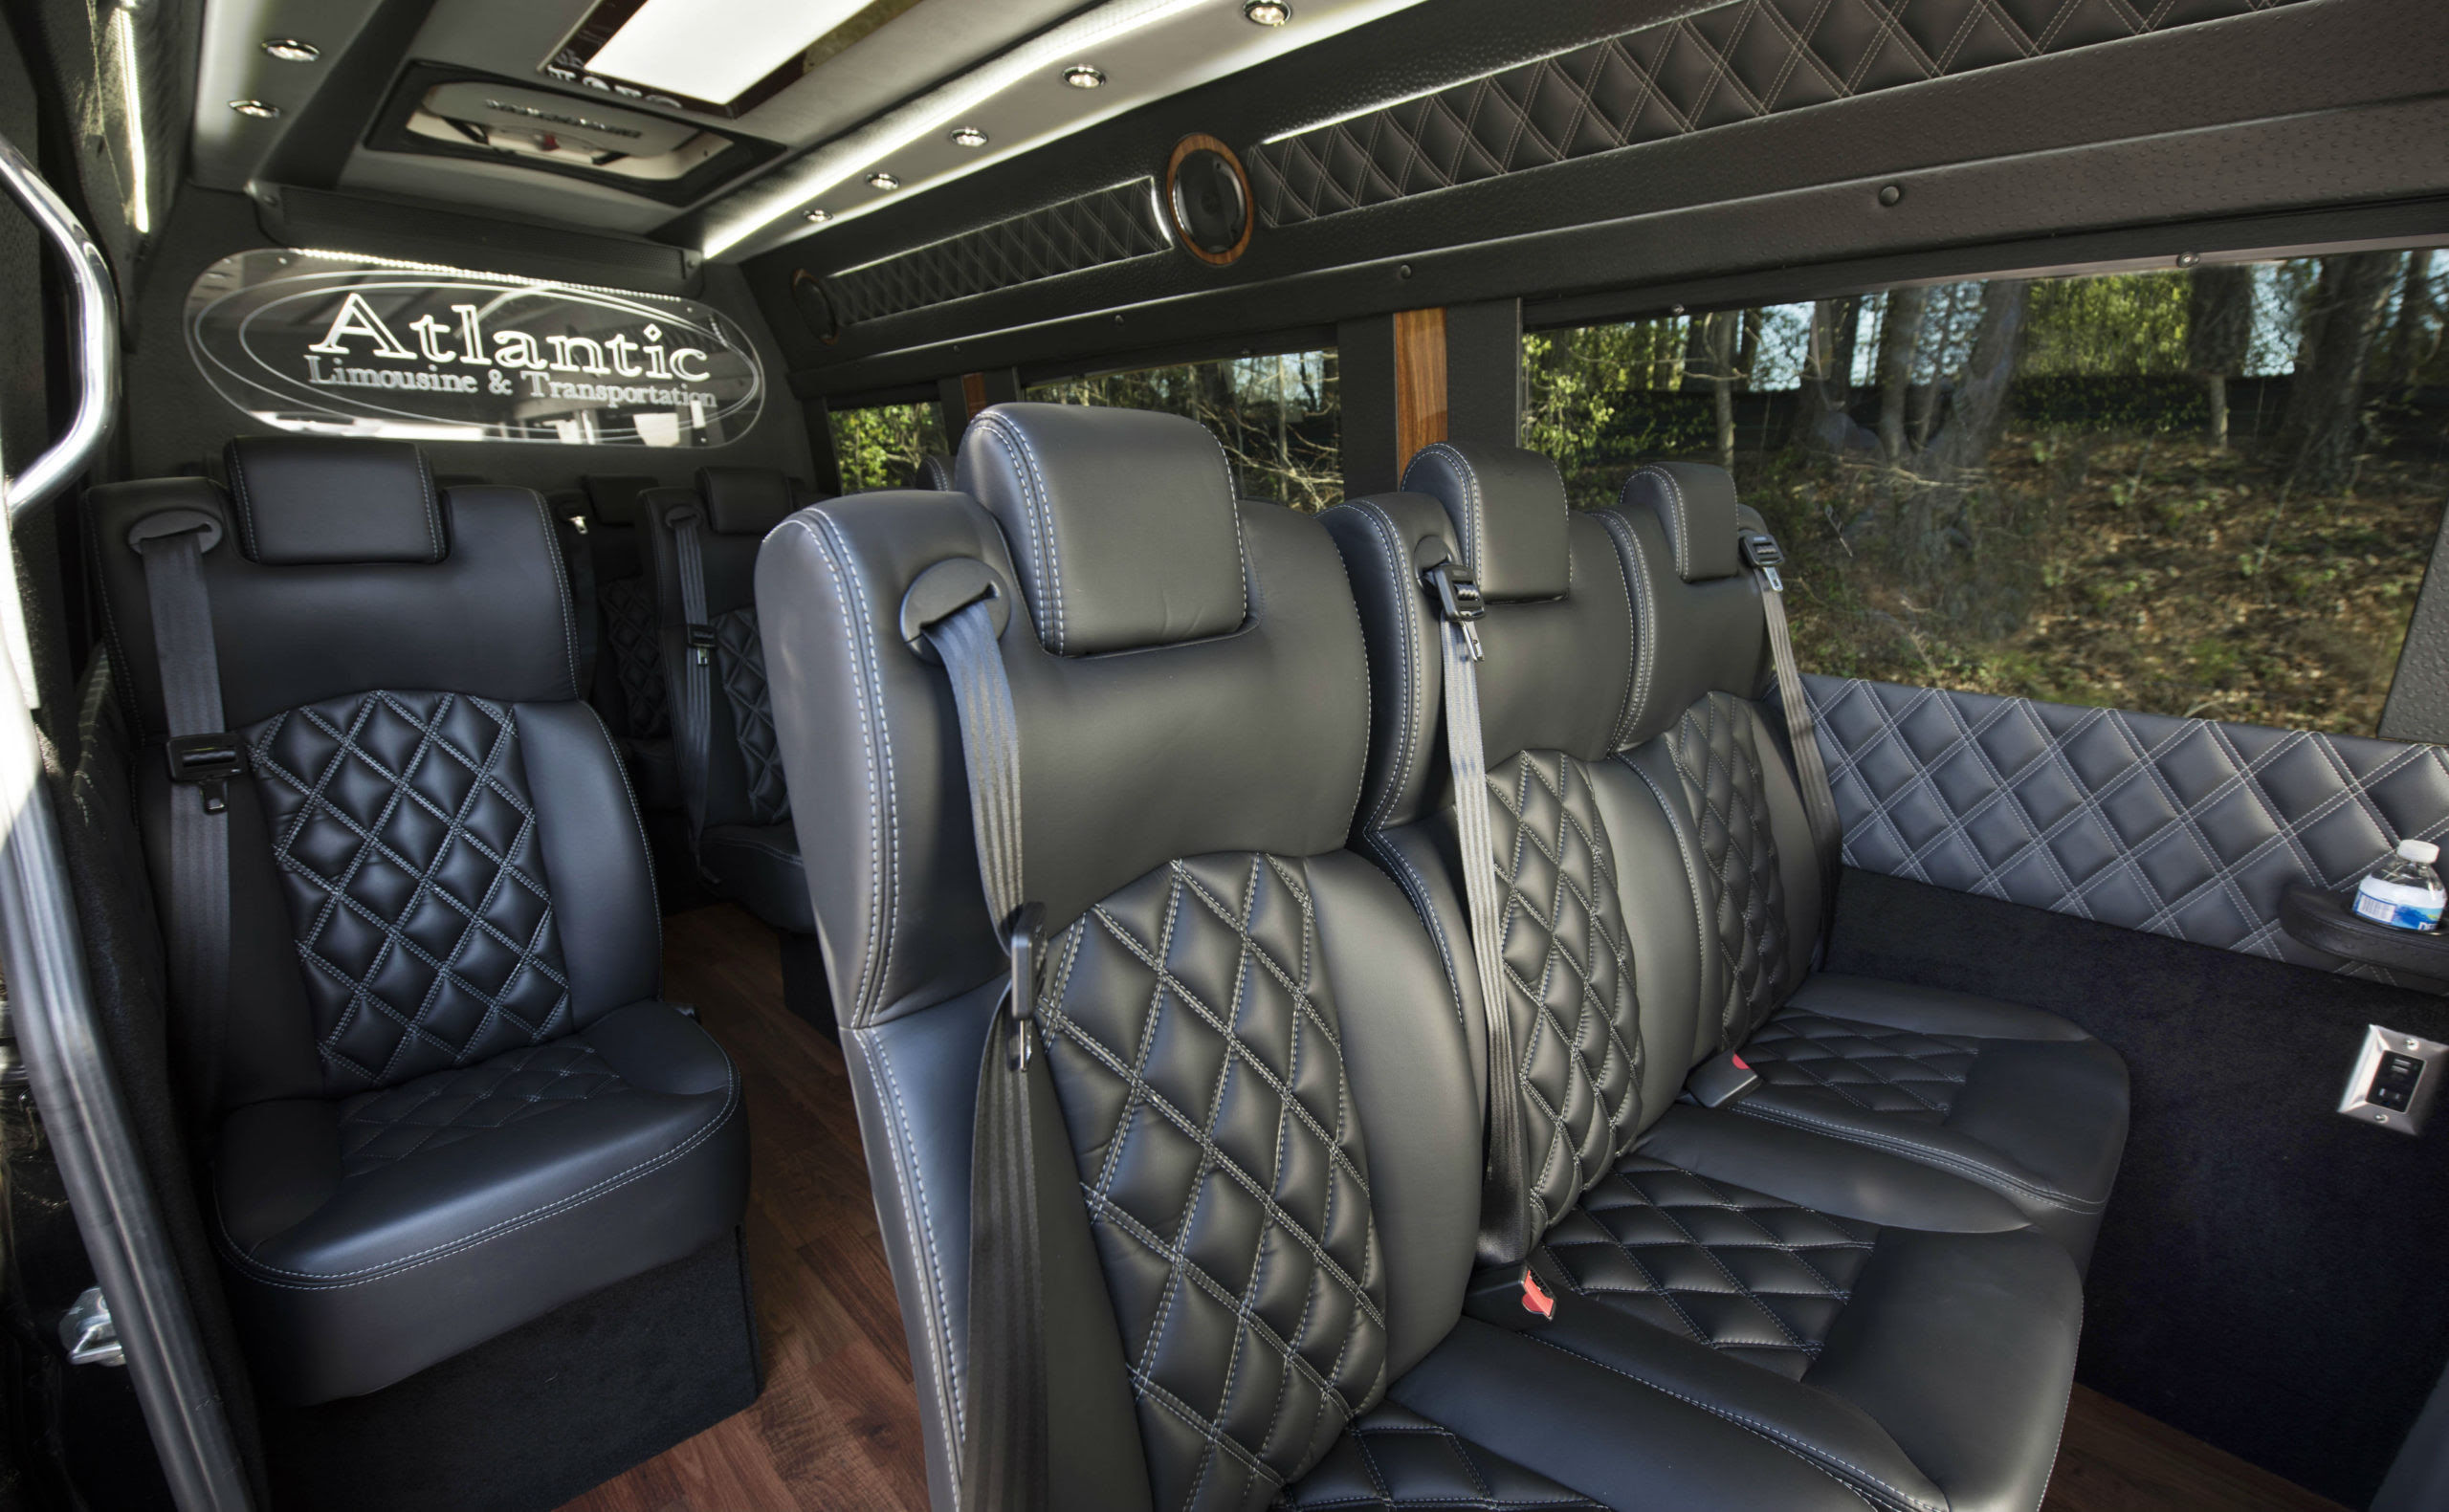 Sprinter Passenger Van Rental in Atlanta - Atlantic Limo